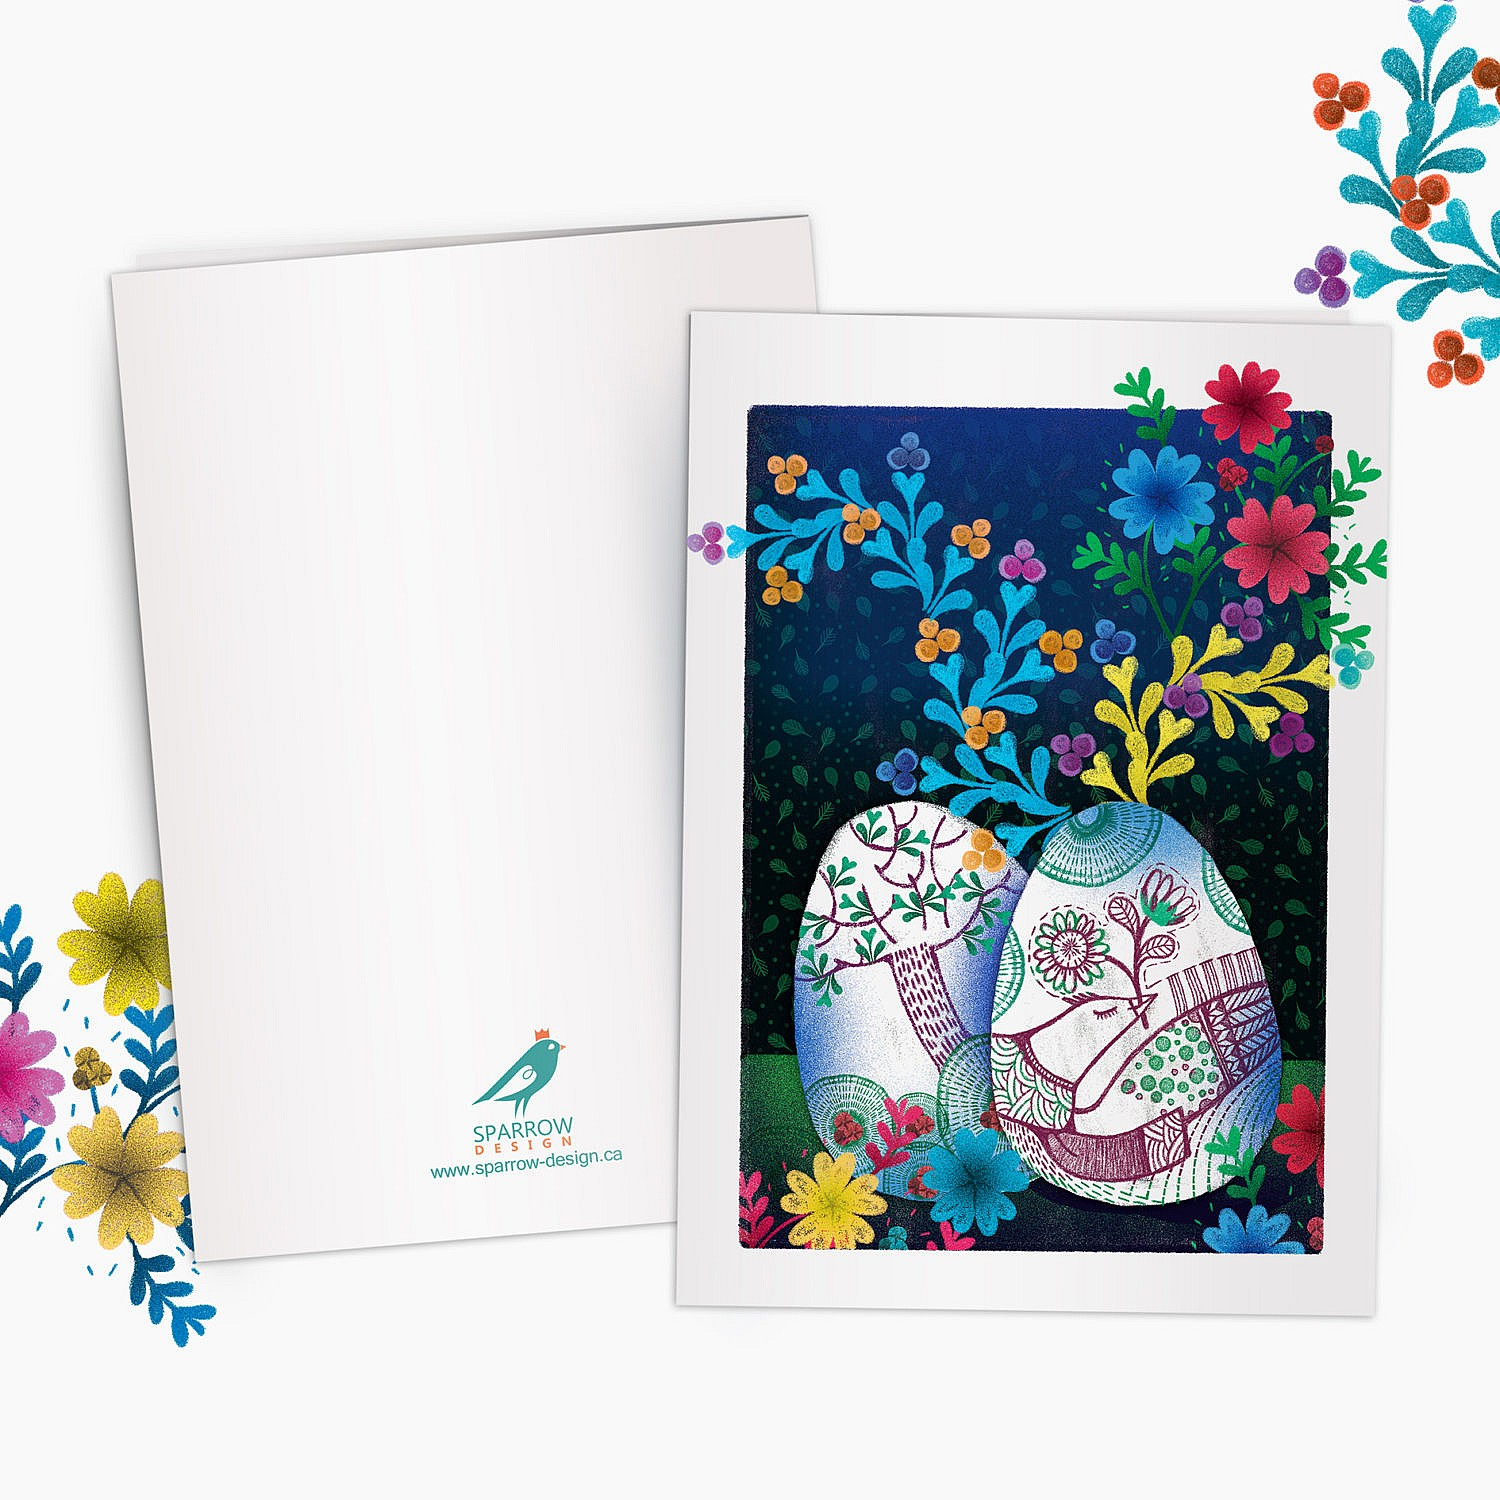 The image is showing a spring scenery. Two painted eggs are in the foreground. The painting on eggs is showing a bird. On the background there are colorful flowers. This greeting card is perfect for nowruz festival.